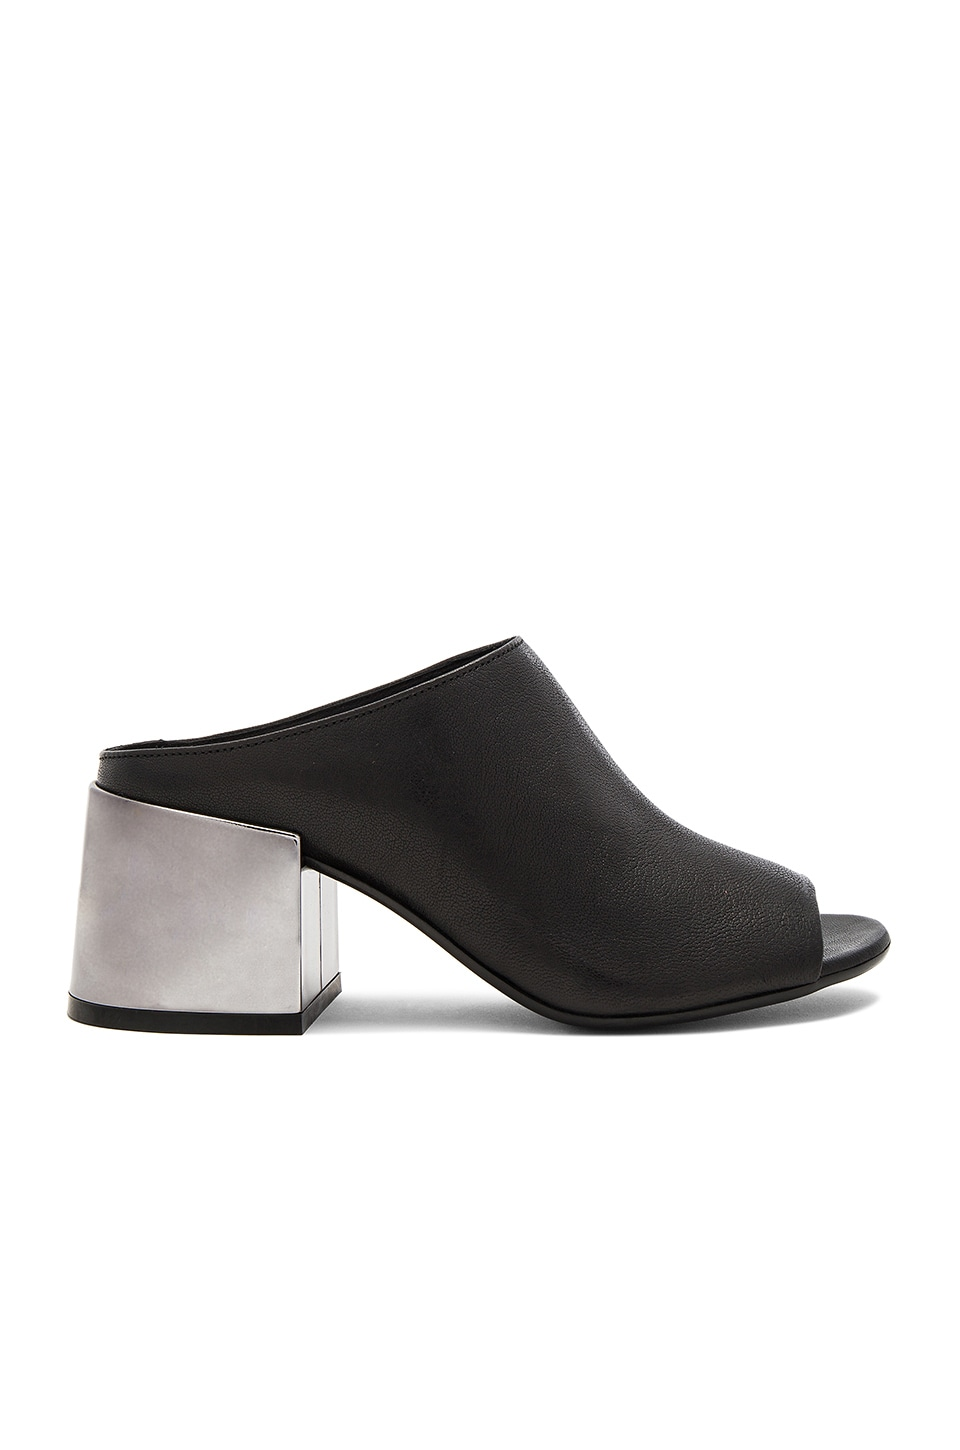 MM6 Maison Margiela Slip On Heeled Sandal in Black